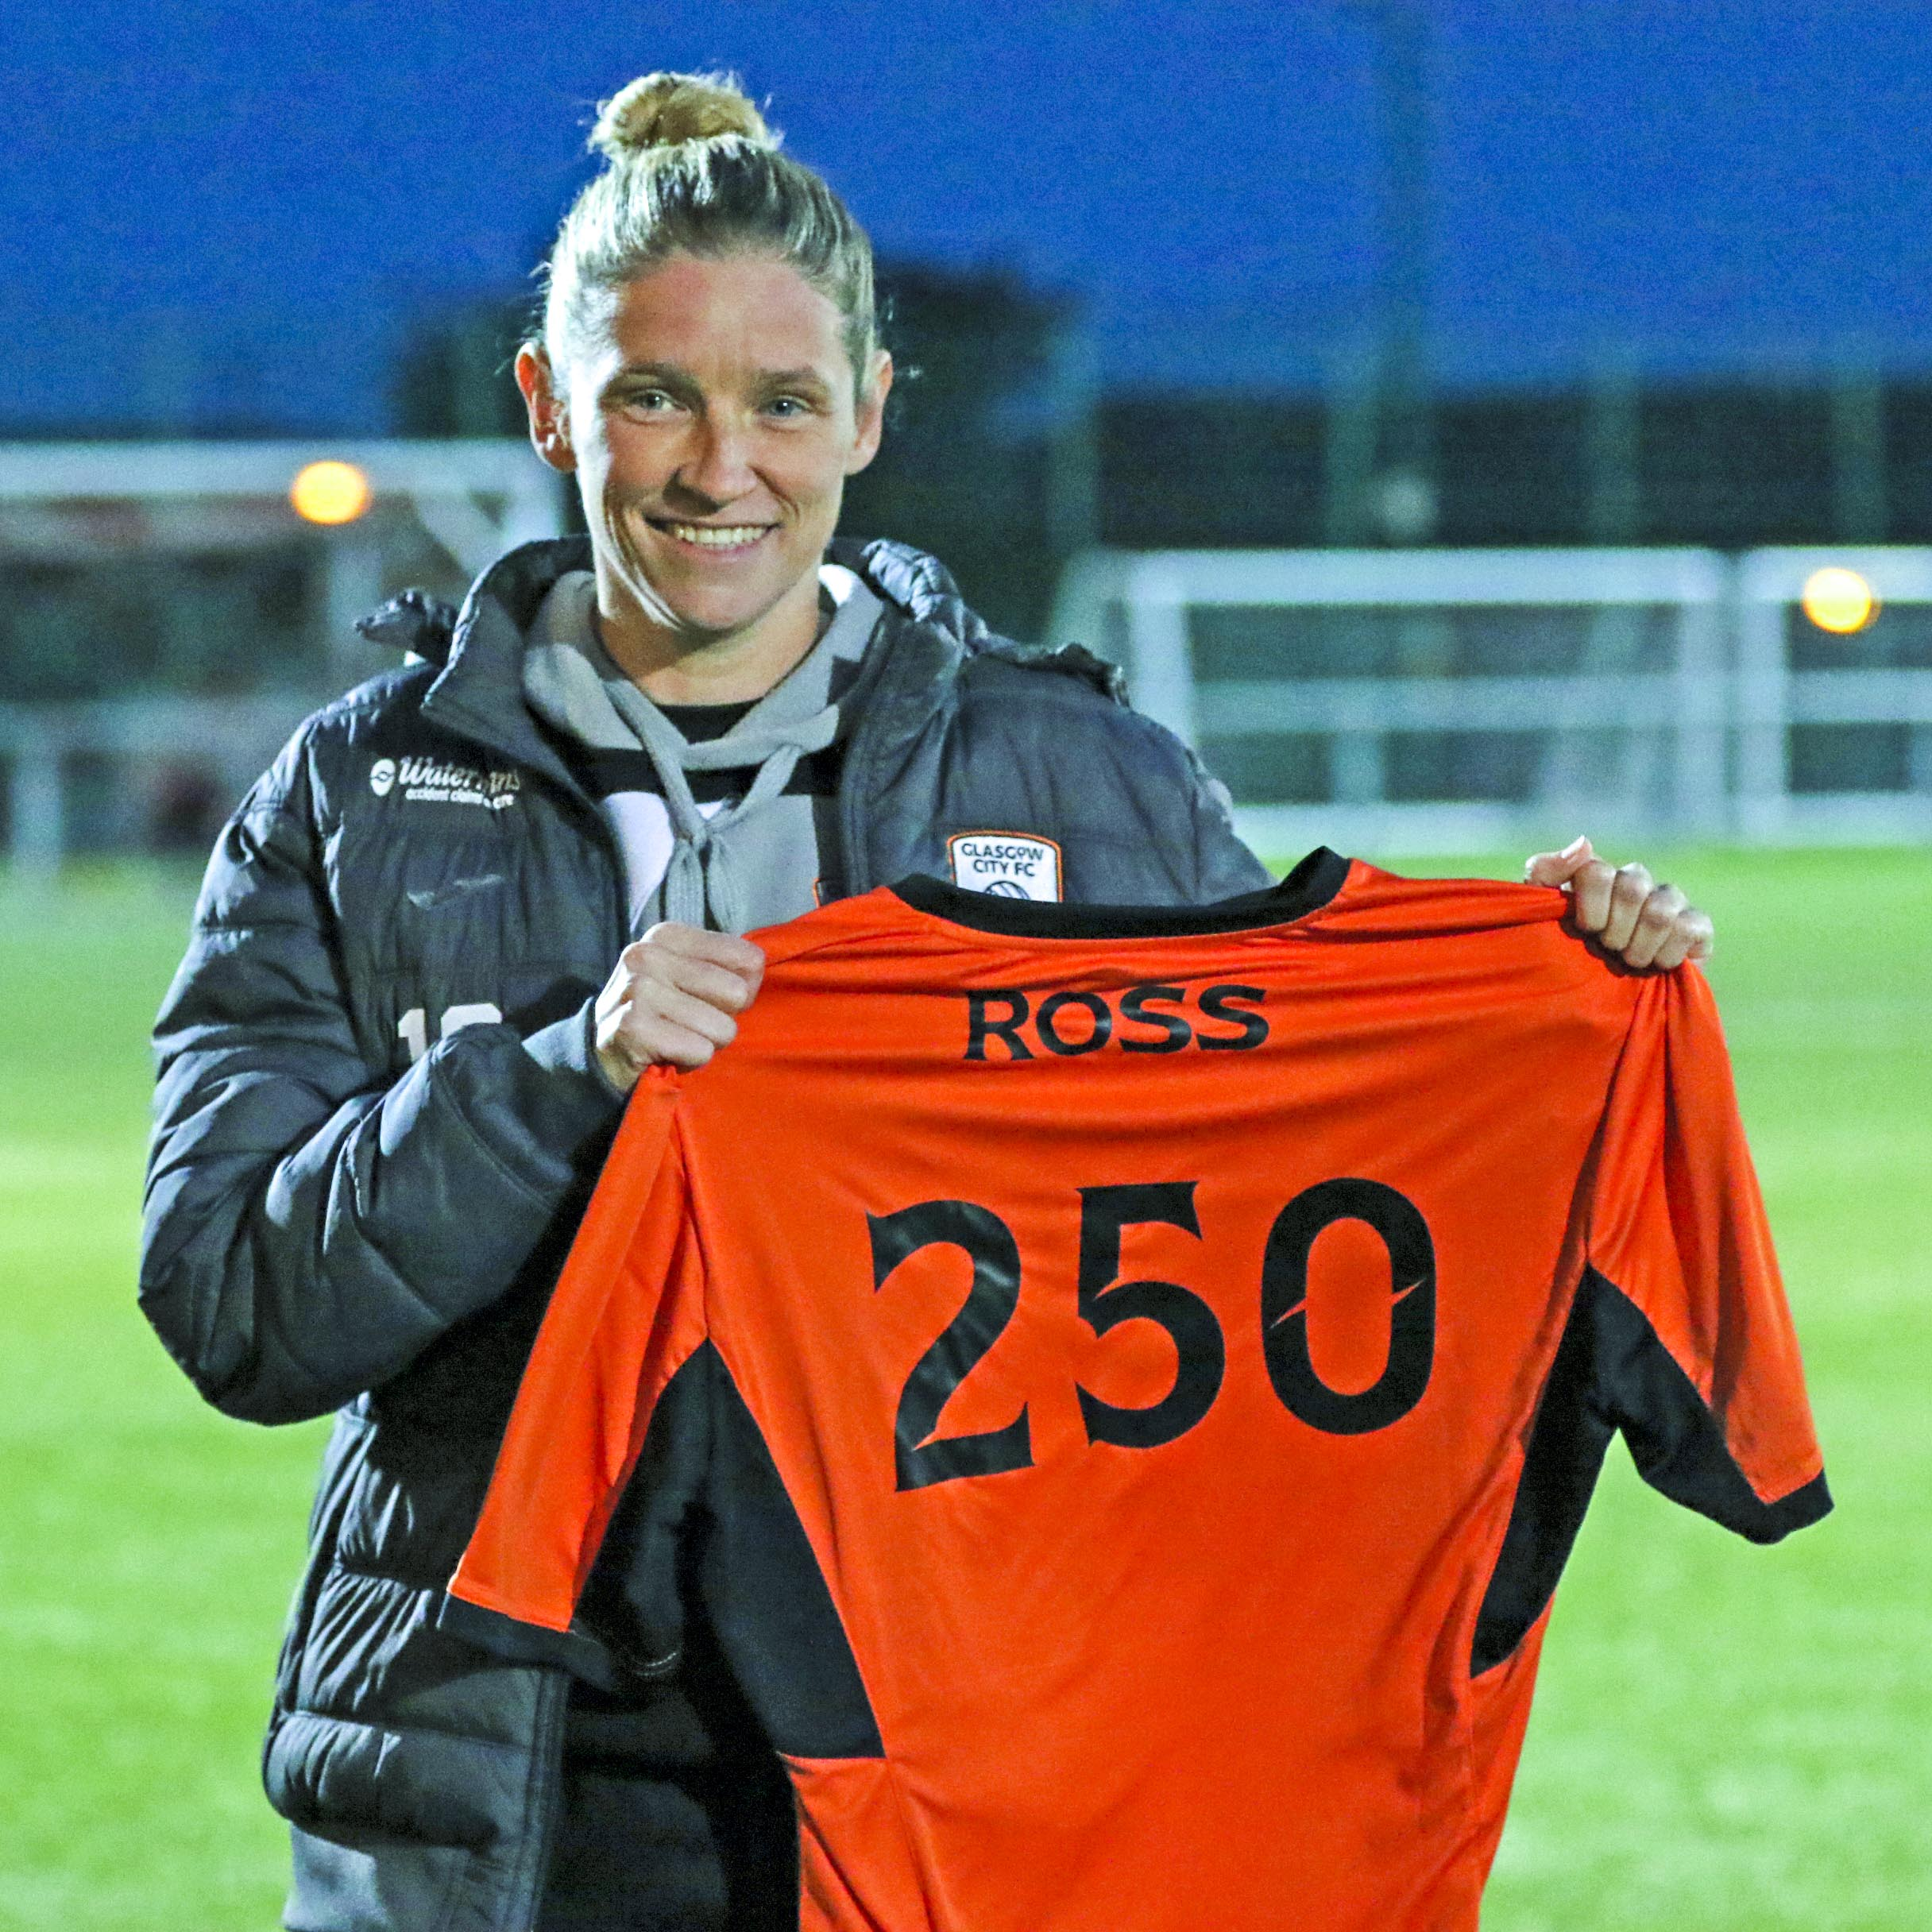 Leanne Ross Moves To Assistant Coach Role At Glasgow City